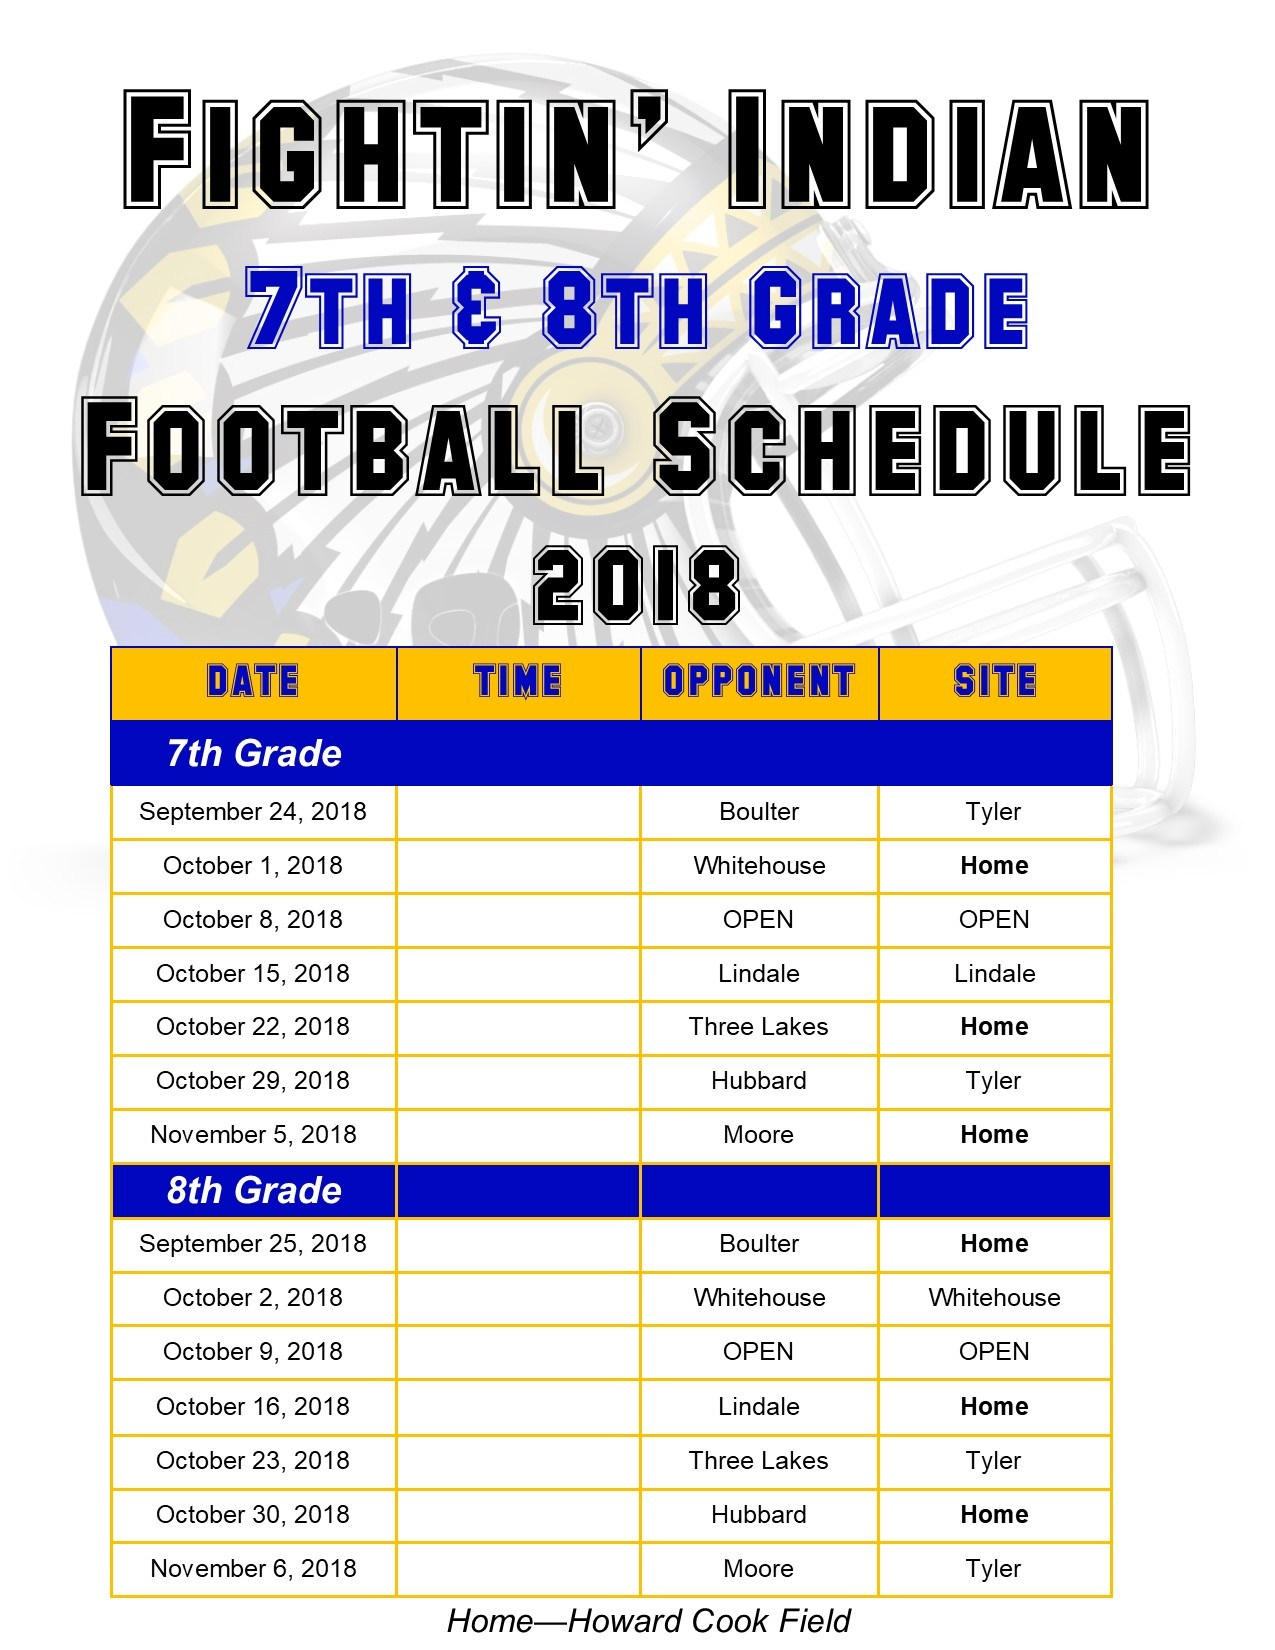 schedule for 7th and 8th grade football teams